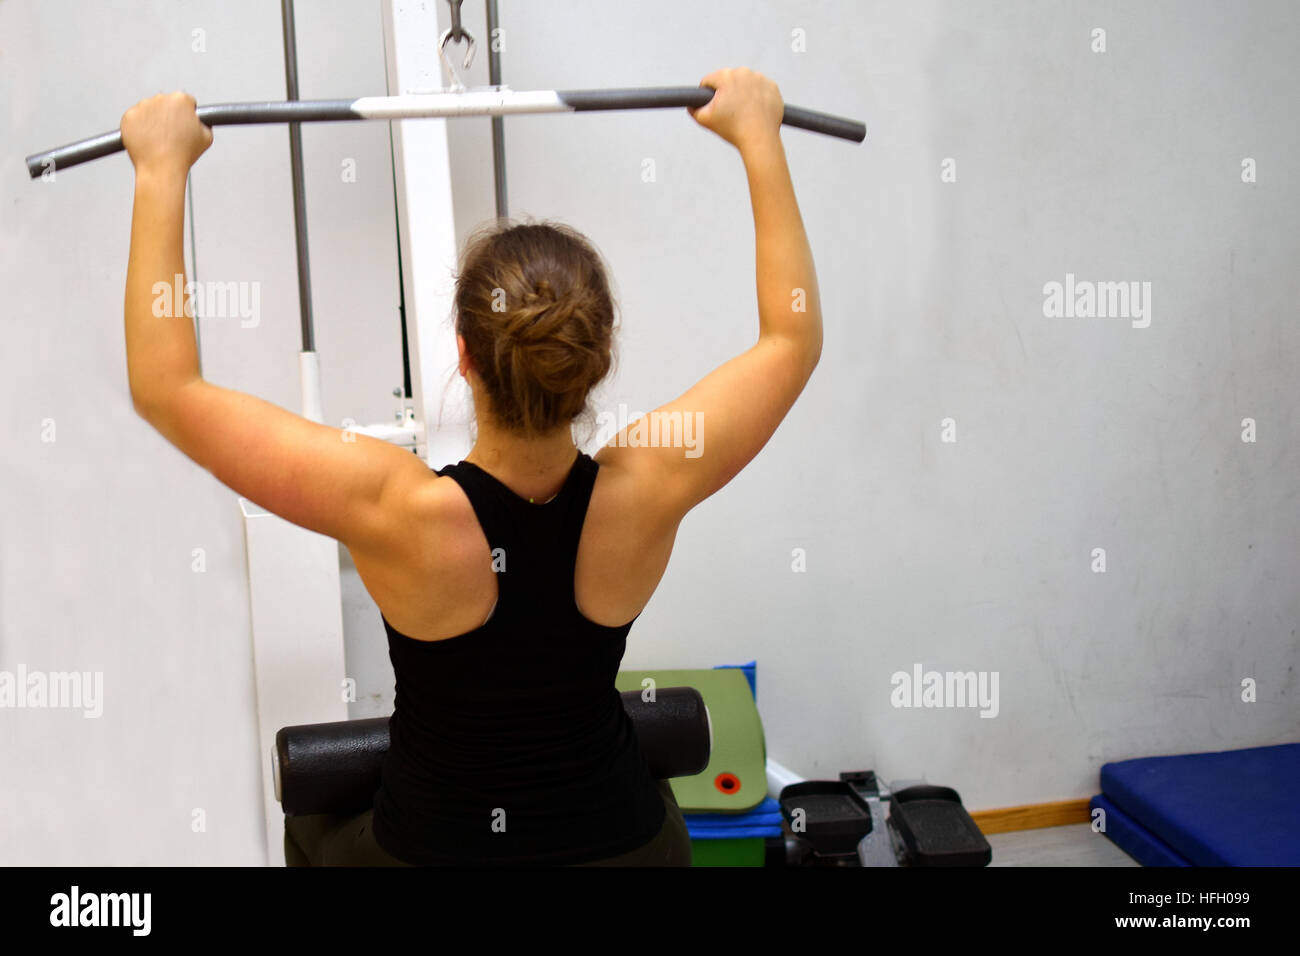 Woman at the gym. Working out her back muscles and arms with lat pulldown exercise machine. - Stock Image